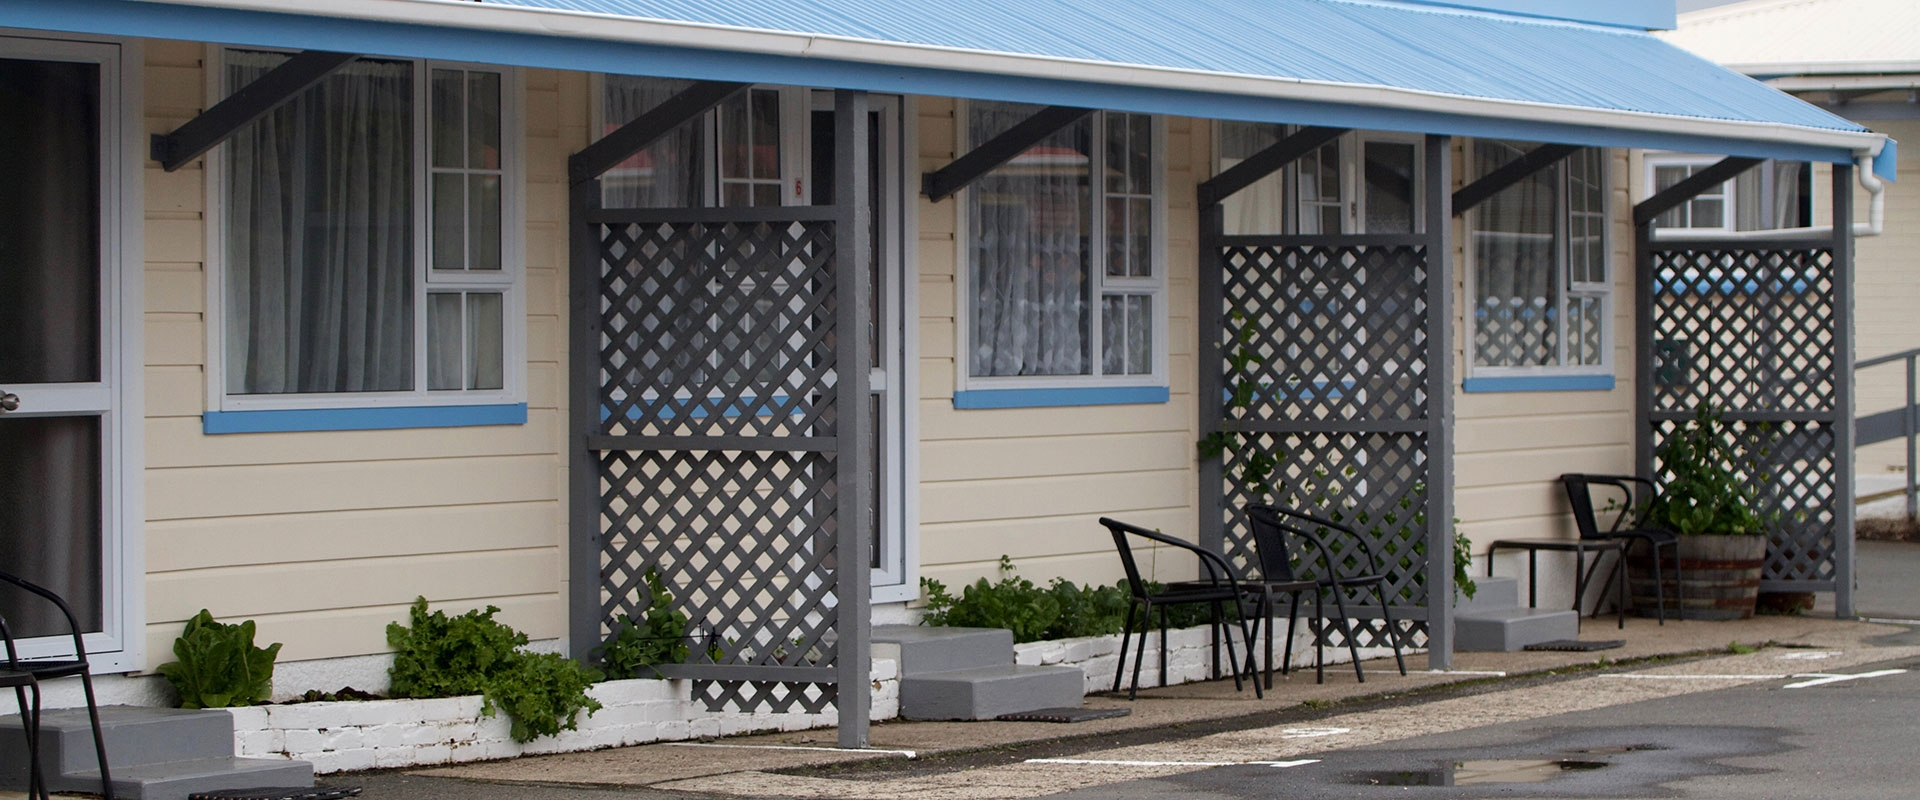 beach lodge motels units